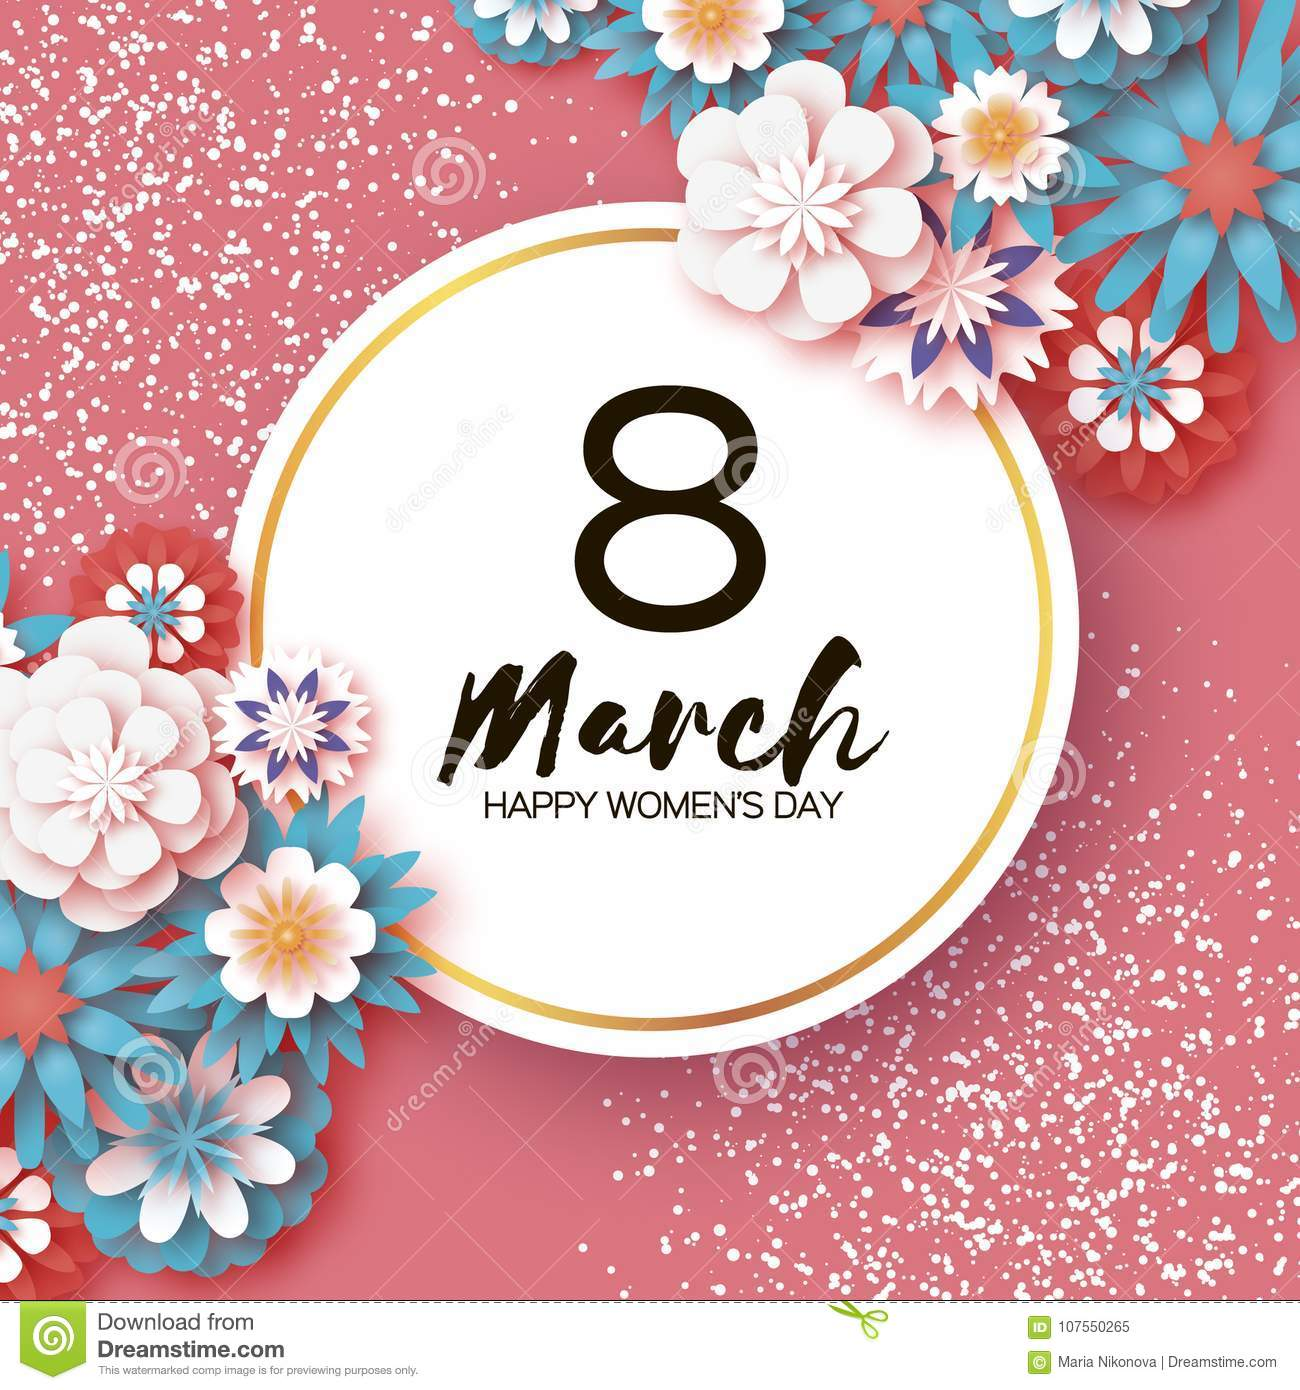 Happy Women`s Day. 8 March. Trendy Mother`s Day. Paper cut Floral Greeting card. Origami flowers flying around Circle